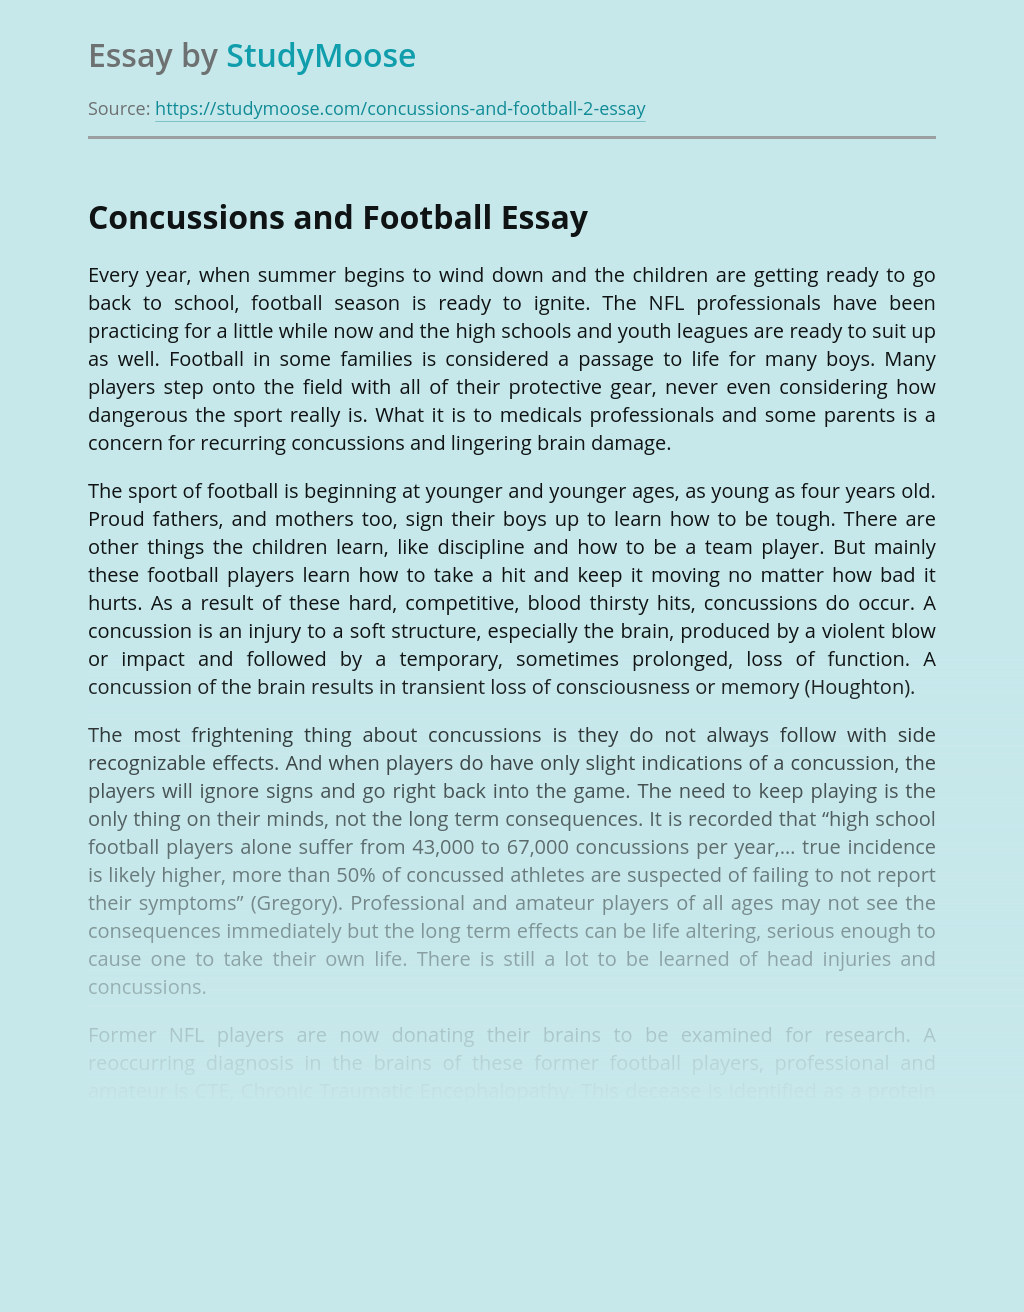 Concussions and Football